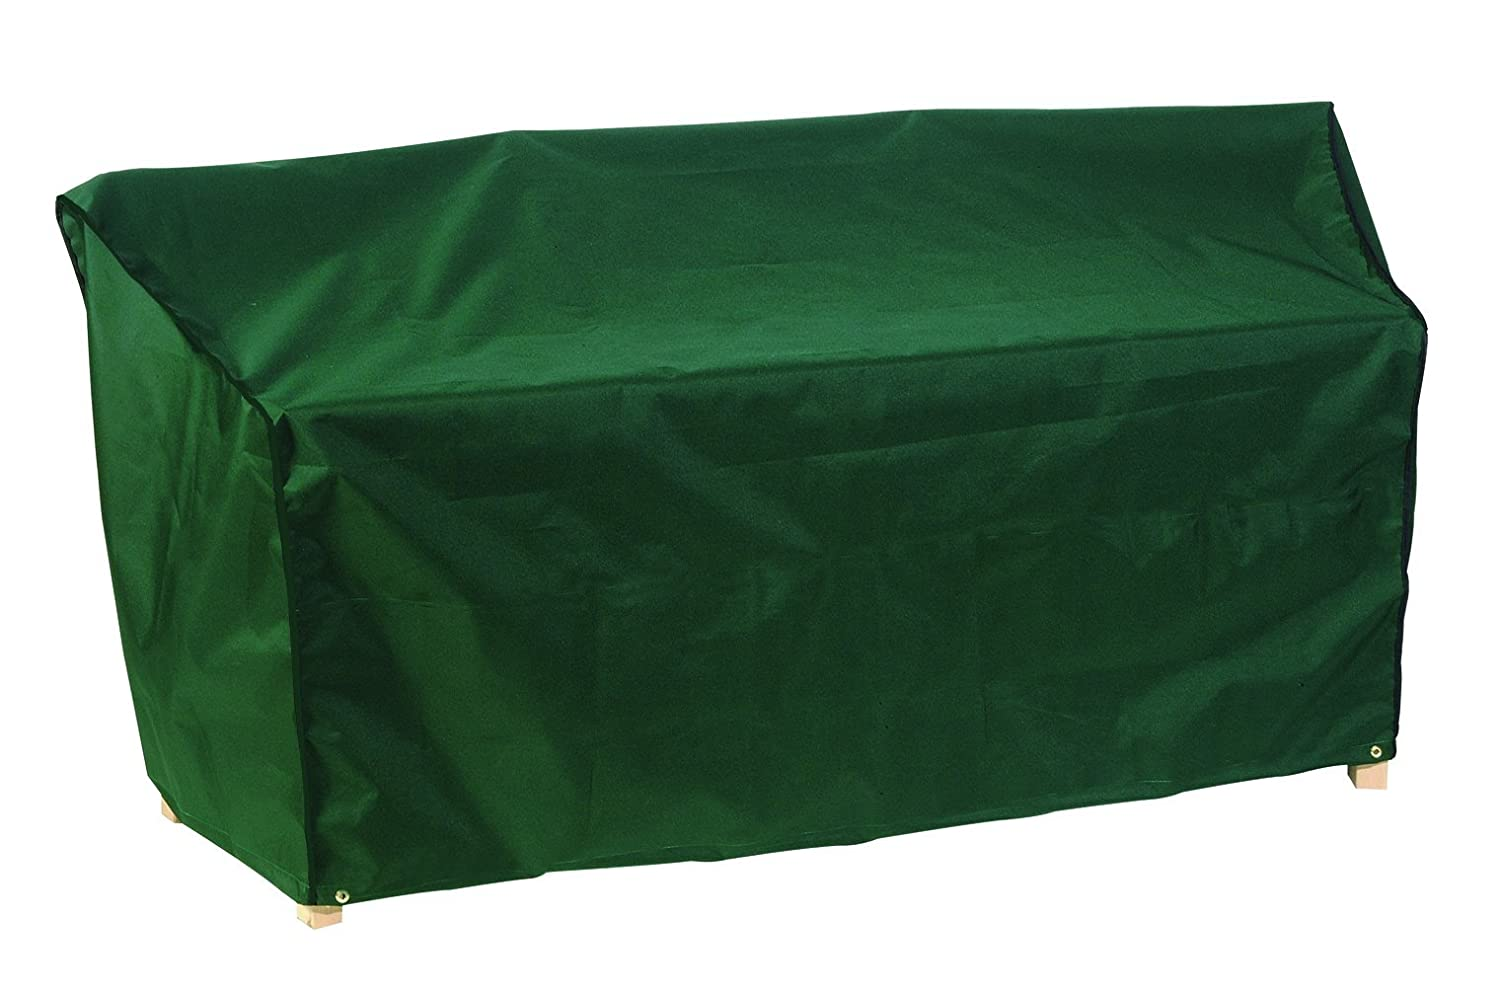 Bosmere MG620 Conversation Seat Cover - Green